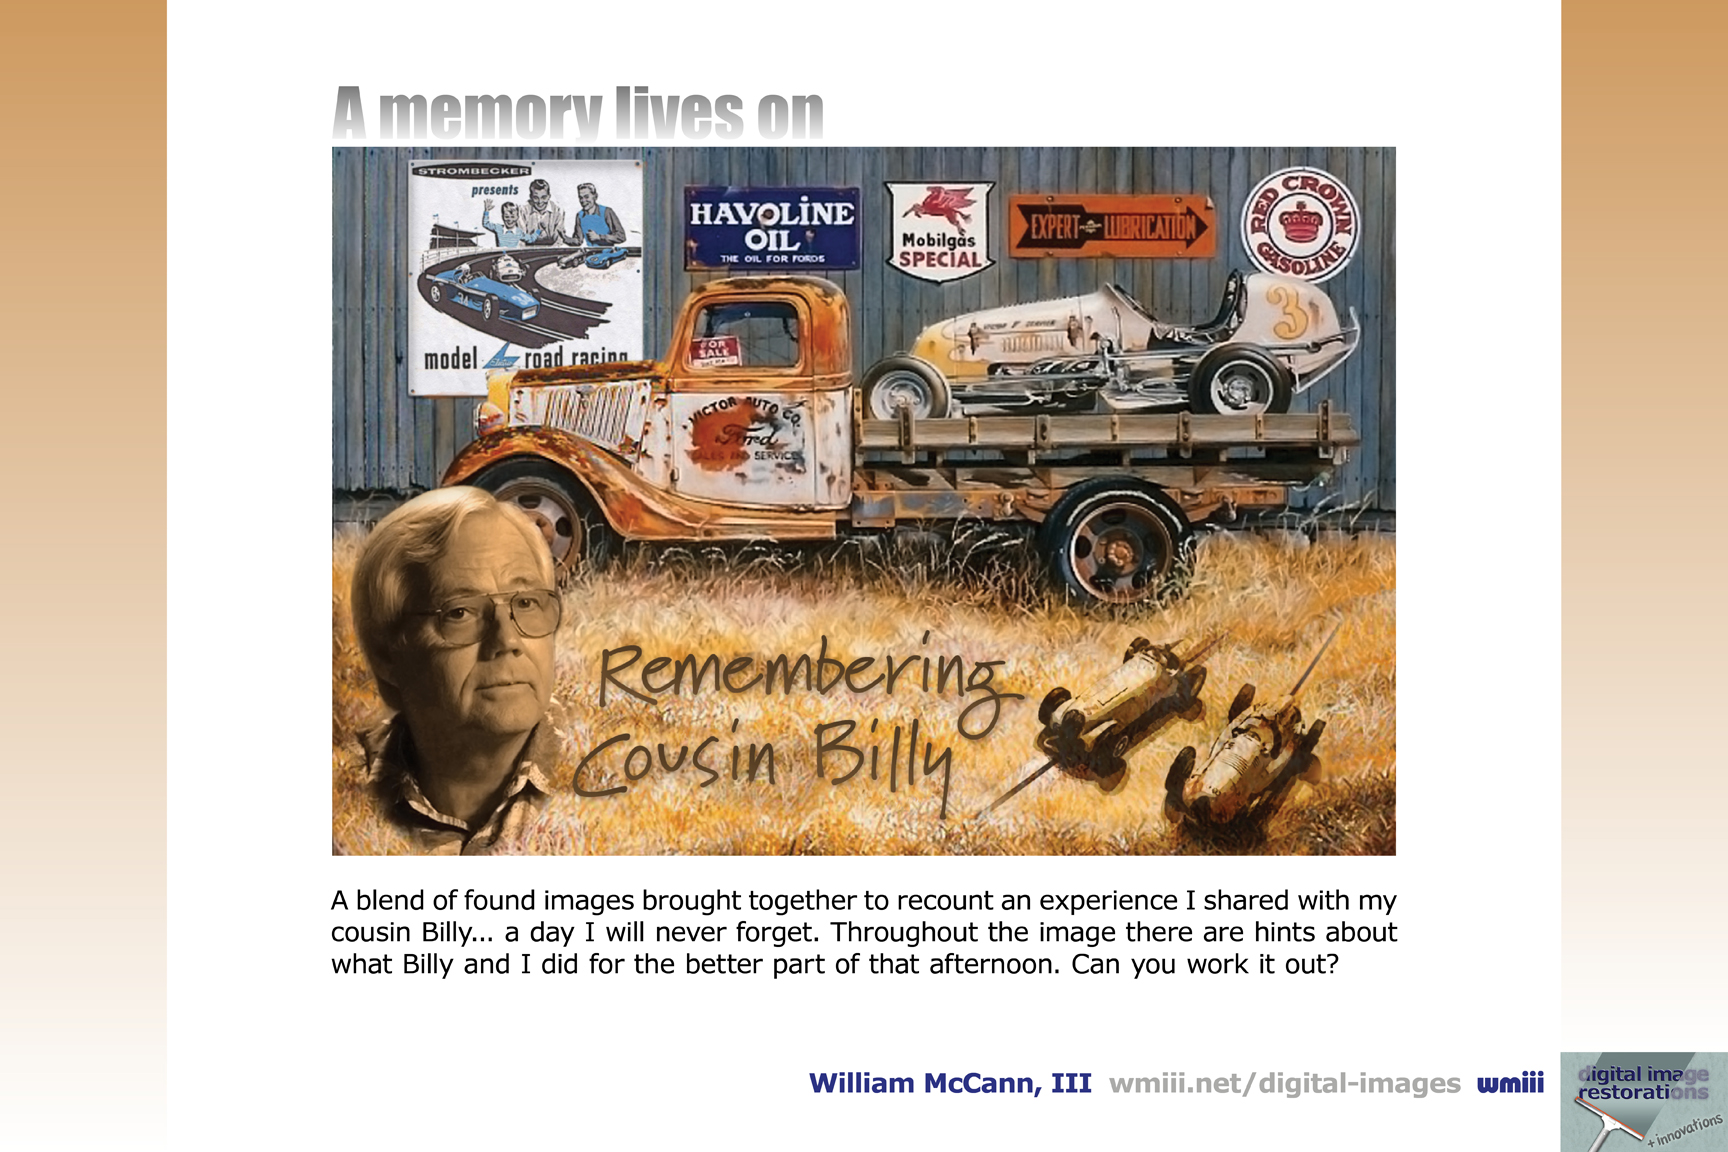 Remembering Cousin Billy